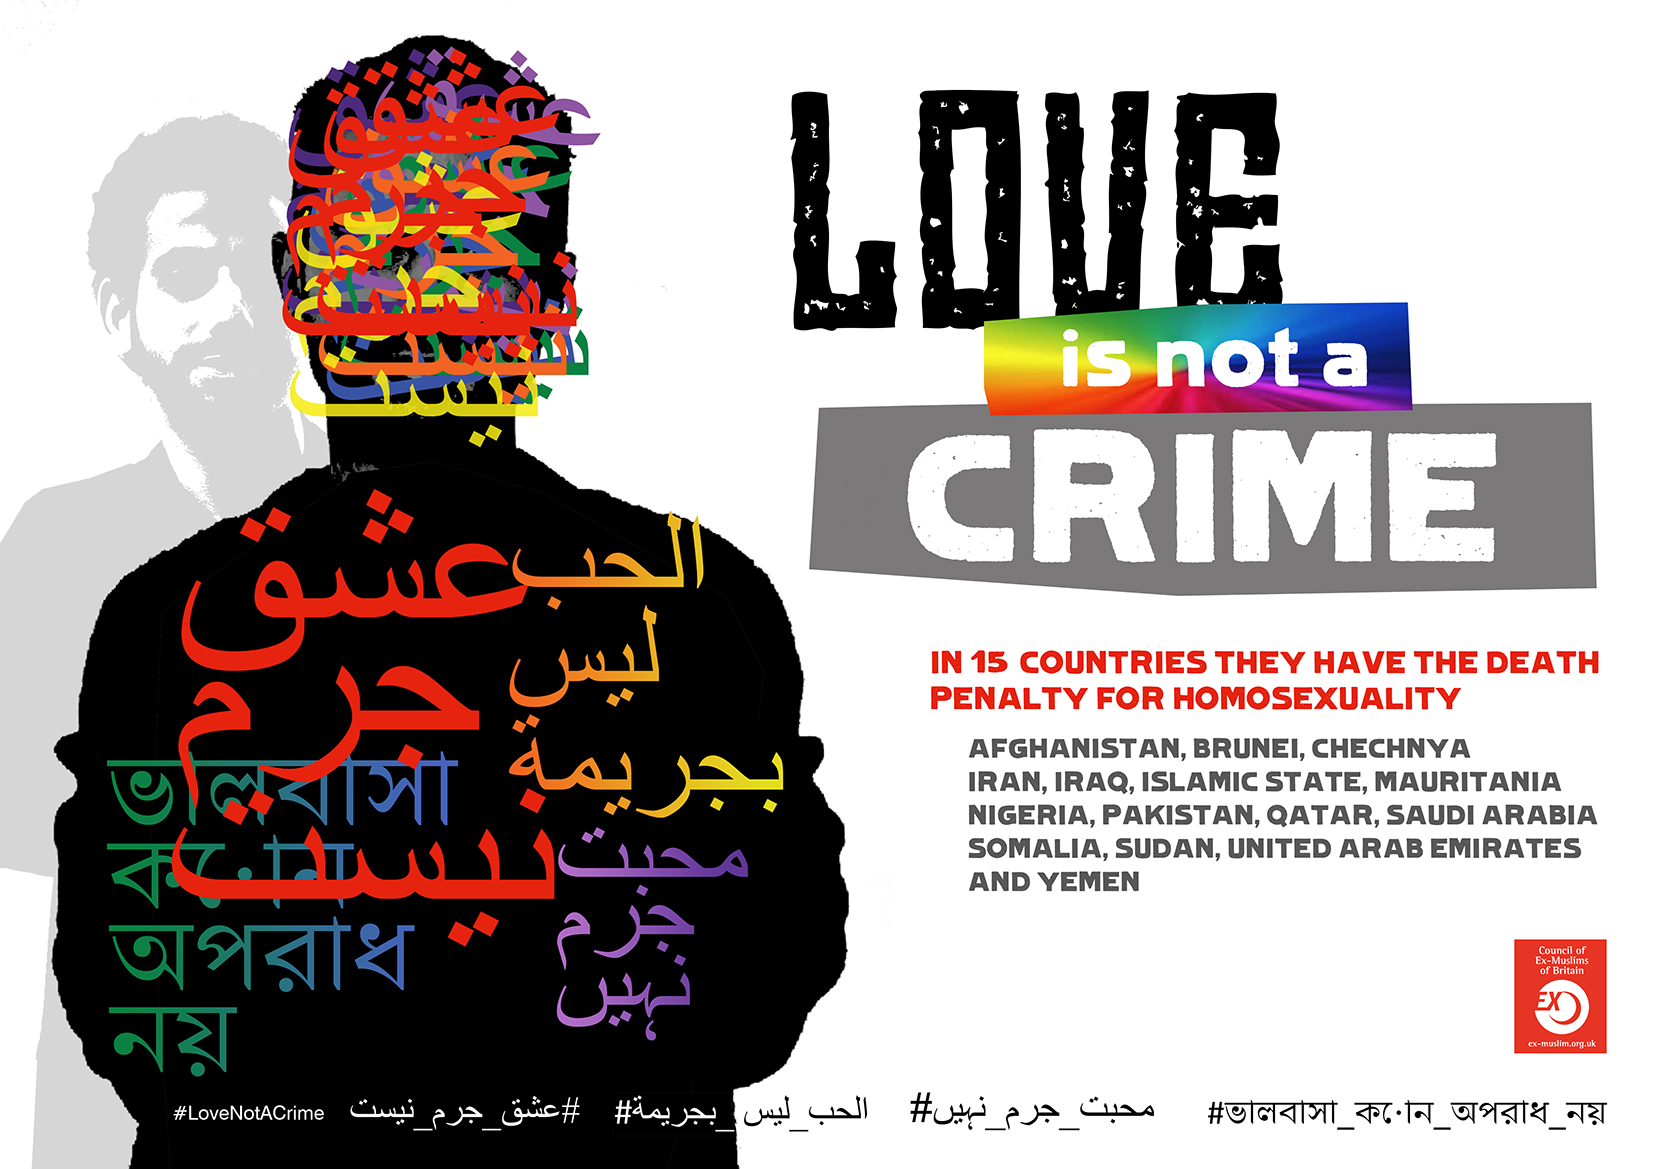 Photo of silhoutte with Love is not a crime text